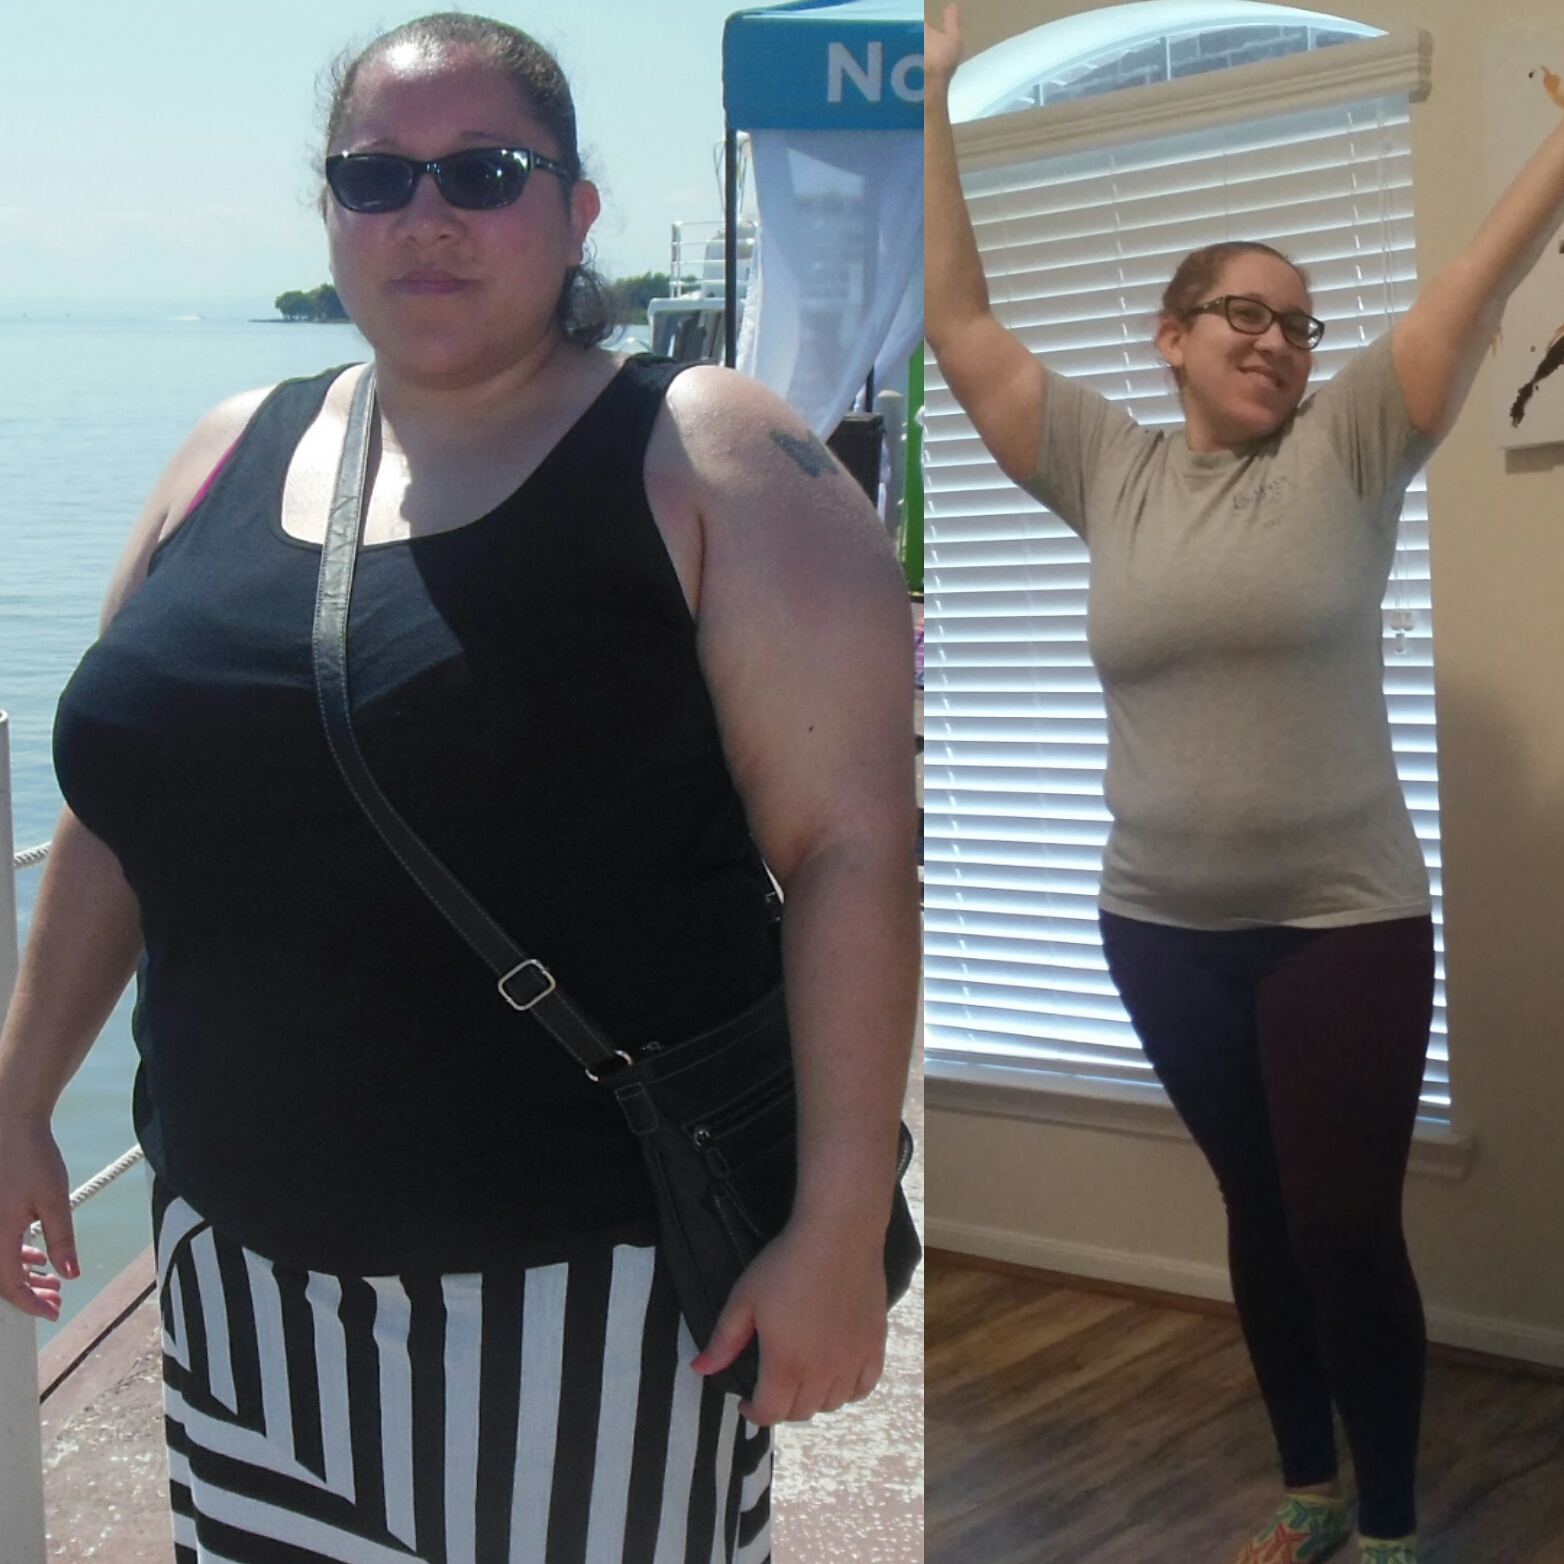 Jamikica lost 90 pounds! See my before and after weight loss pictures, and read amazing weight loss success stories from real women and their best weight loss diet plans and programs. Motivation to lose weight with walking and inspiration from before and after weightloss pics and photos.